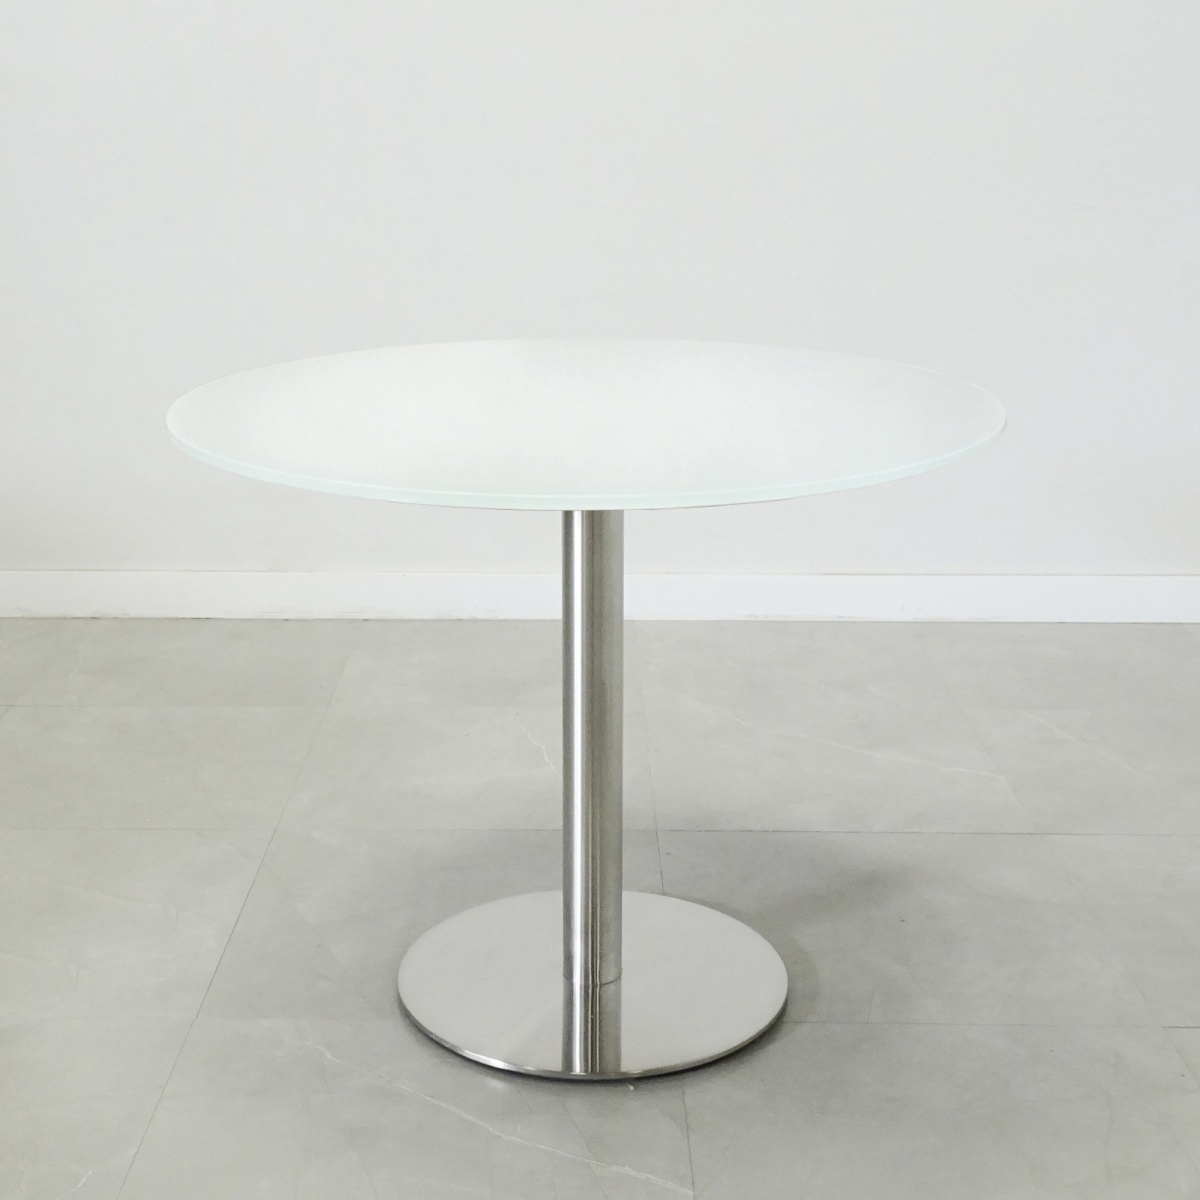 48 In. California Round Meeting Table- Stock #407